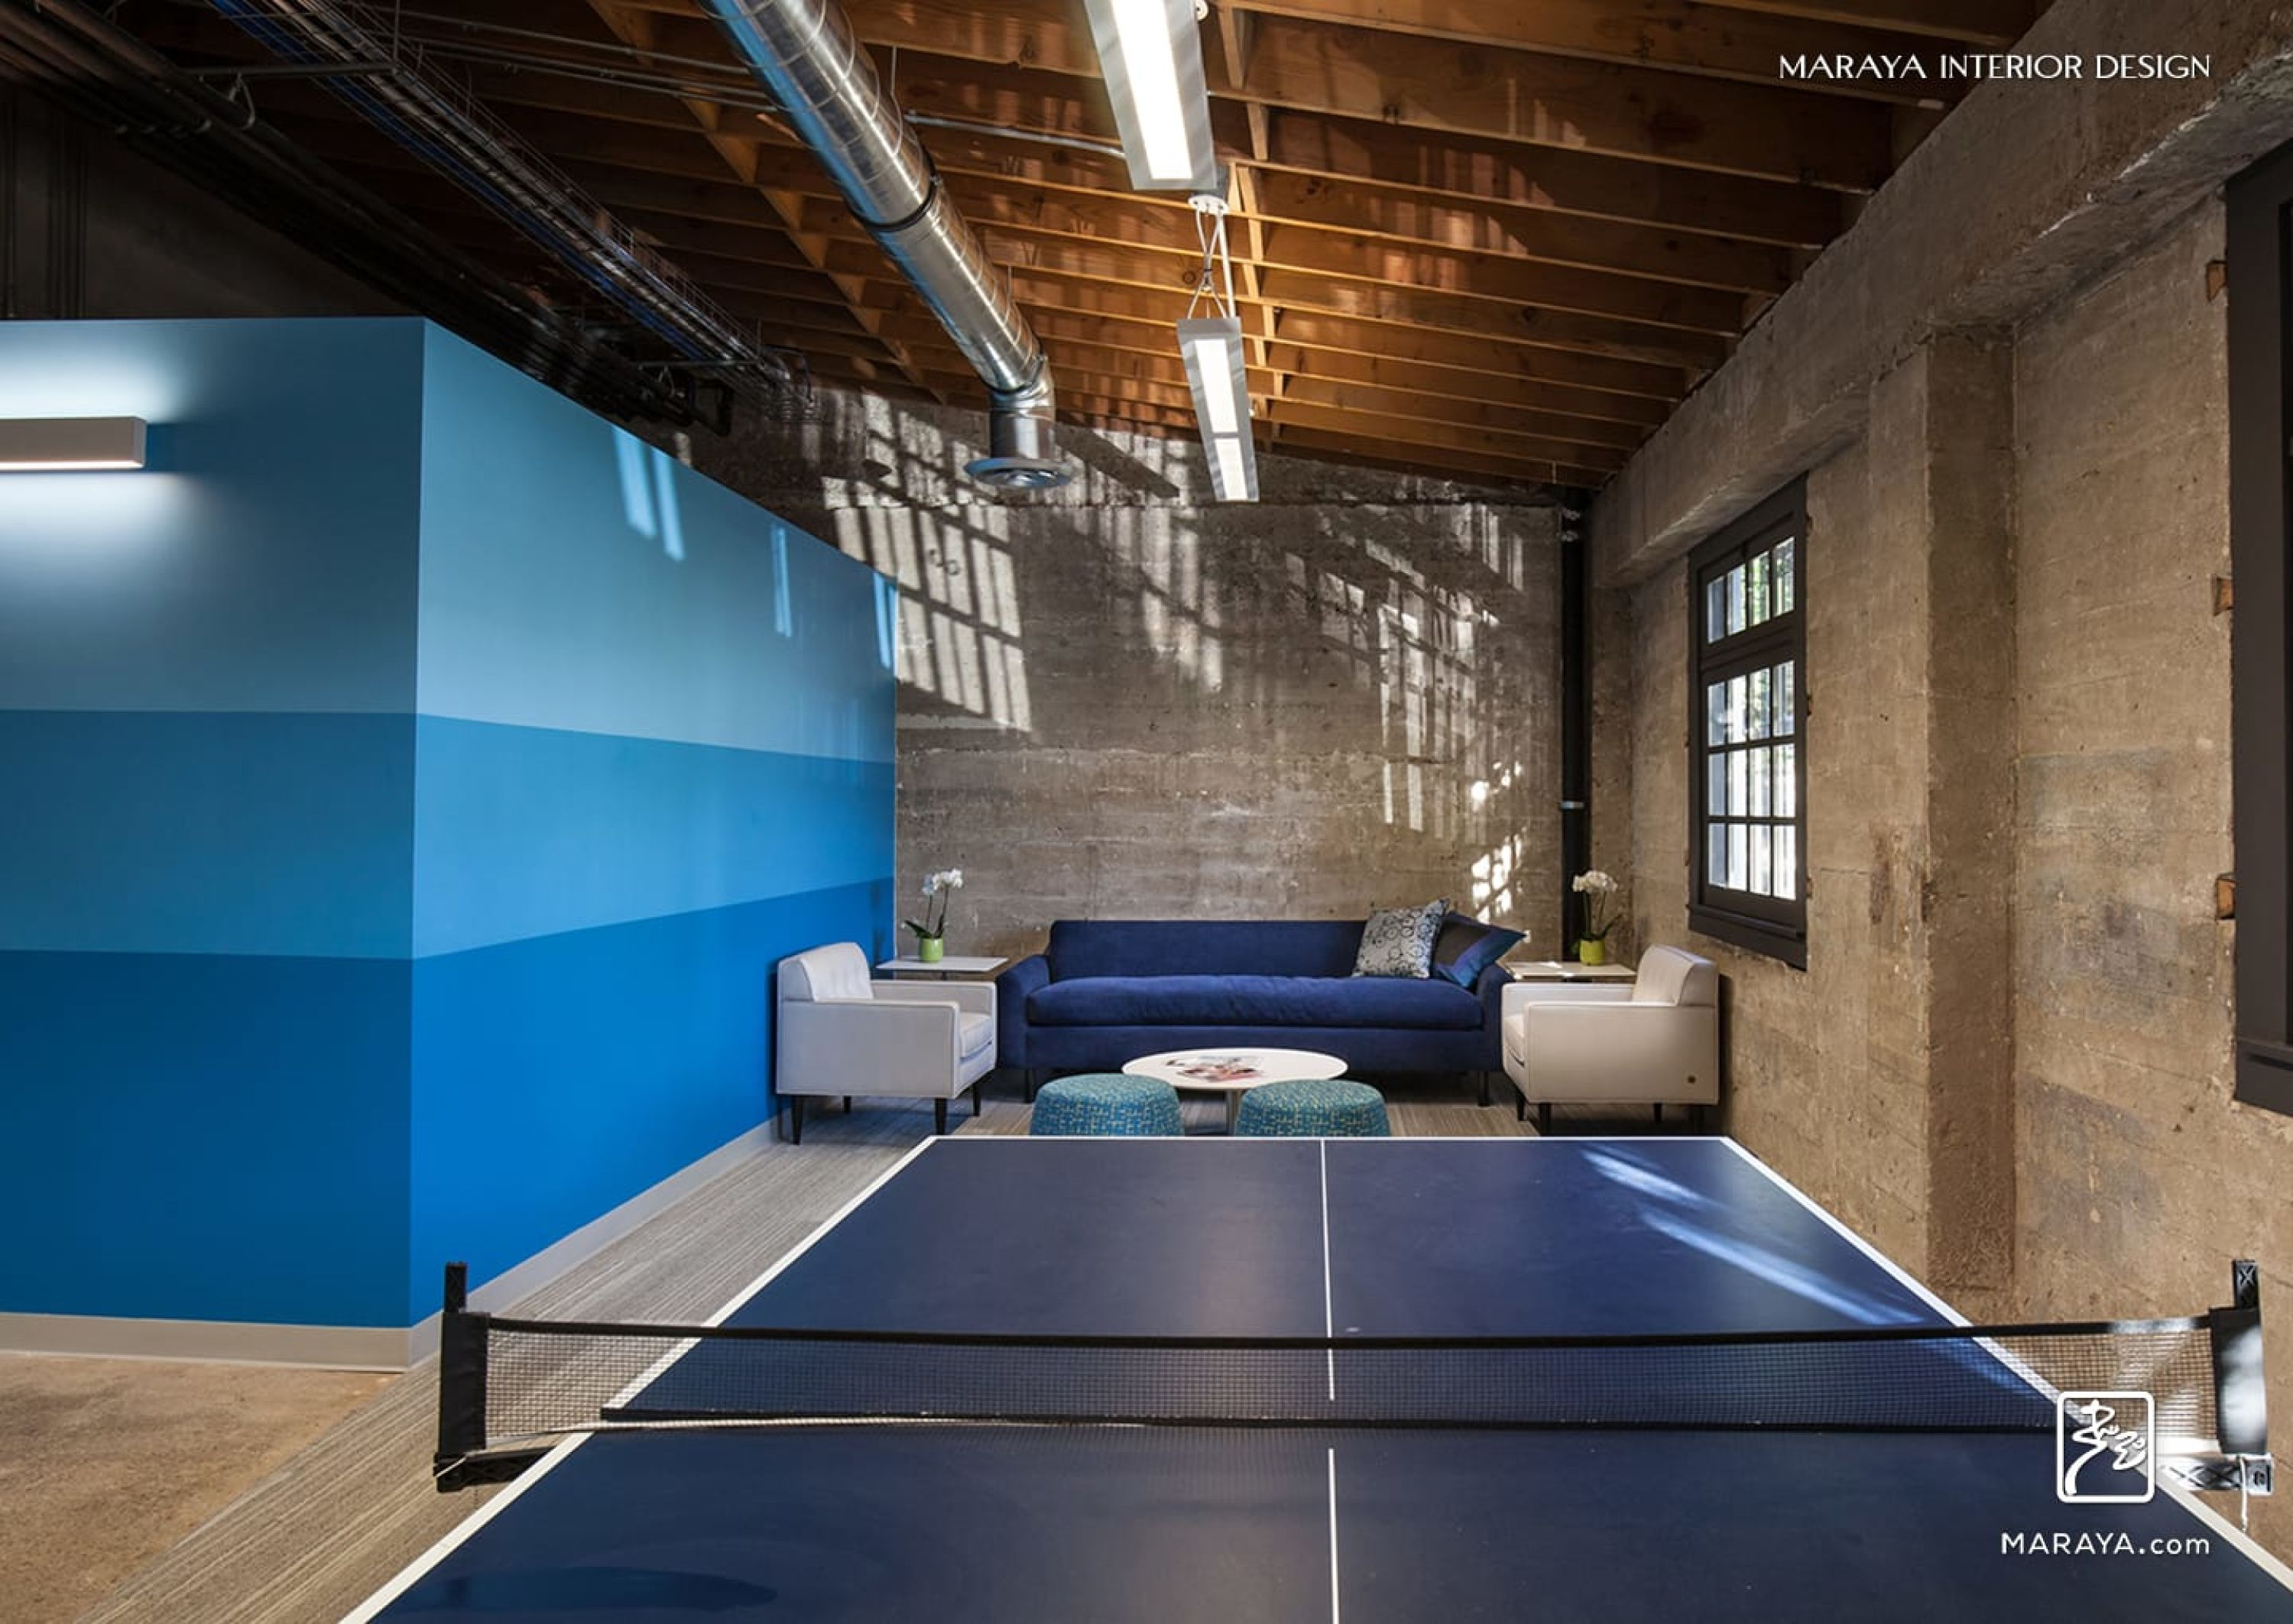 Concrete Modern Office Exposed Wood Truss Ceiling Blue Ping Pong Lounge Area Maraya Interior Design